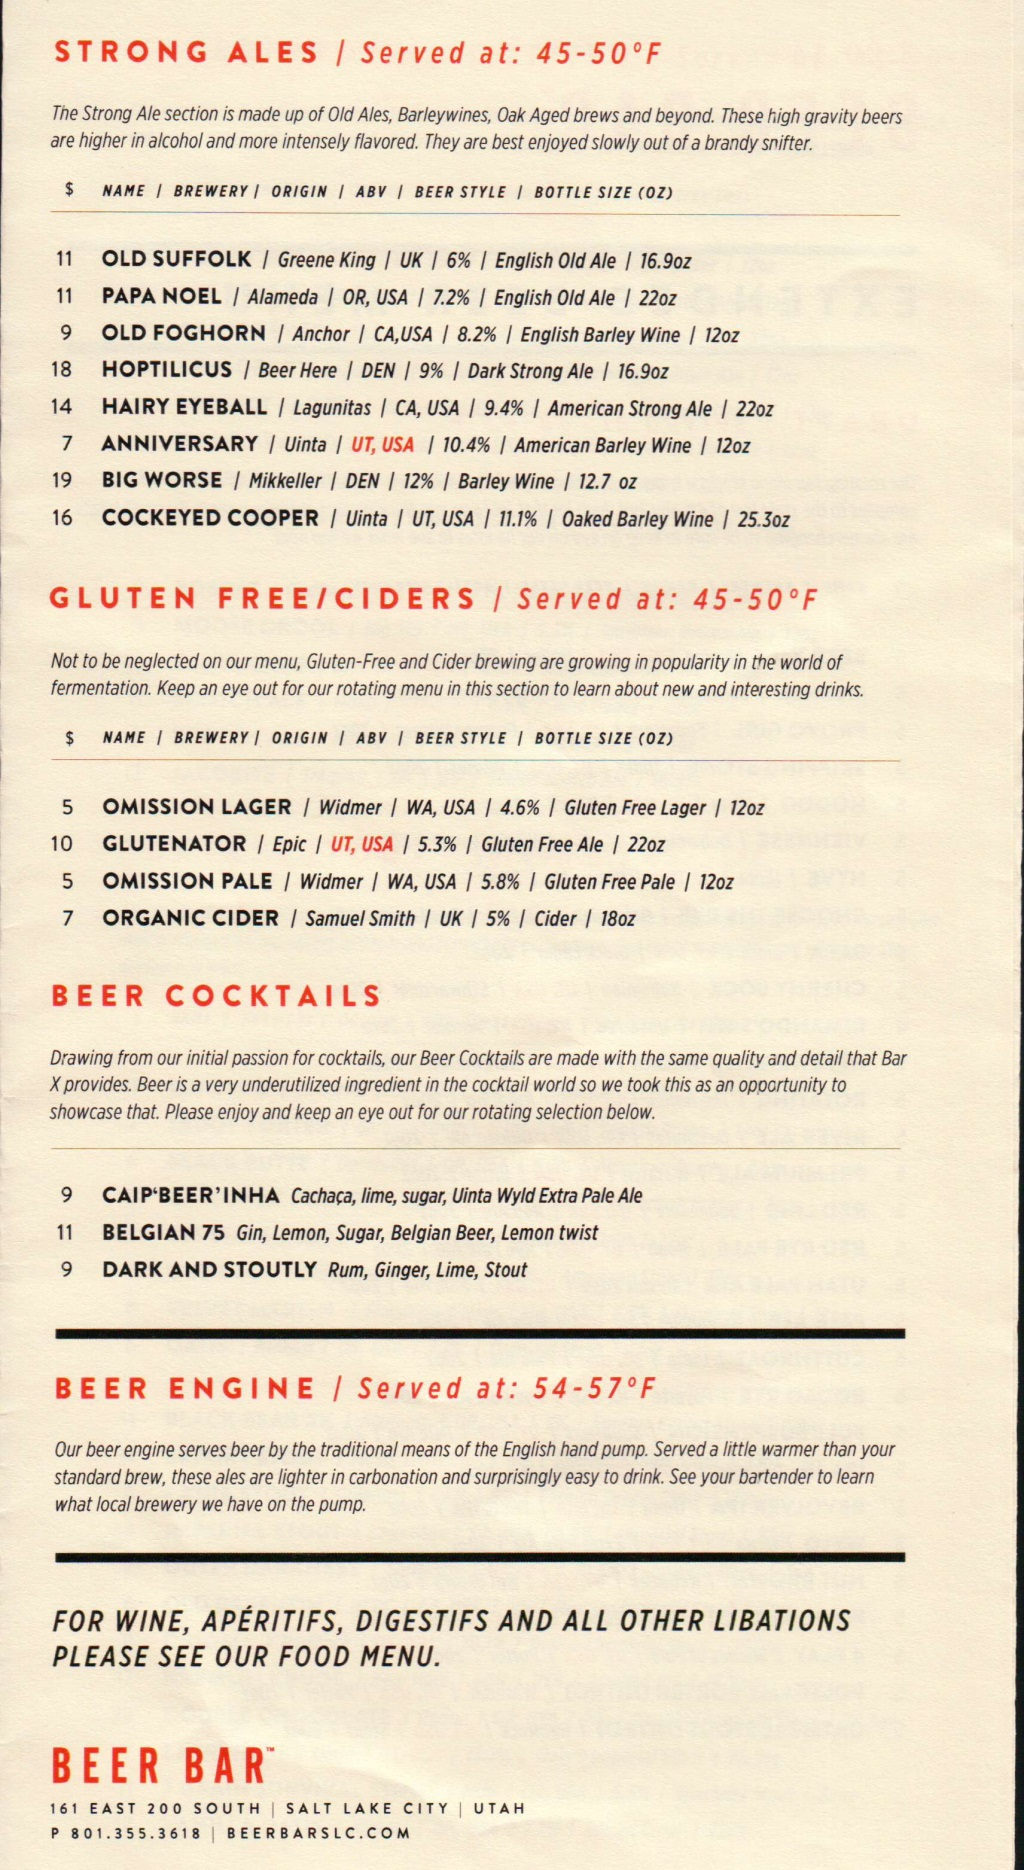 Beer Bar menu 8